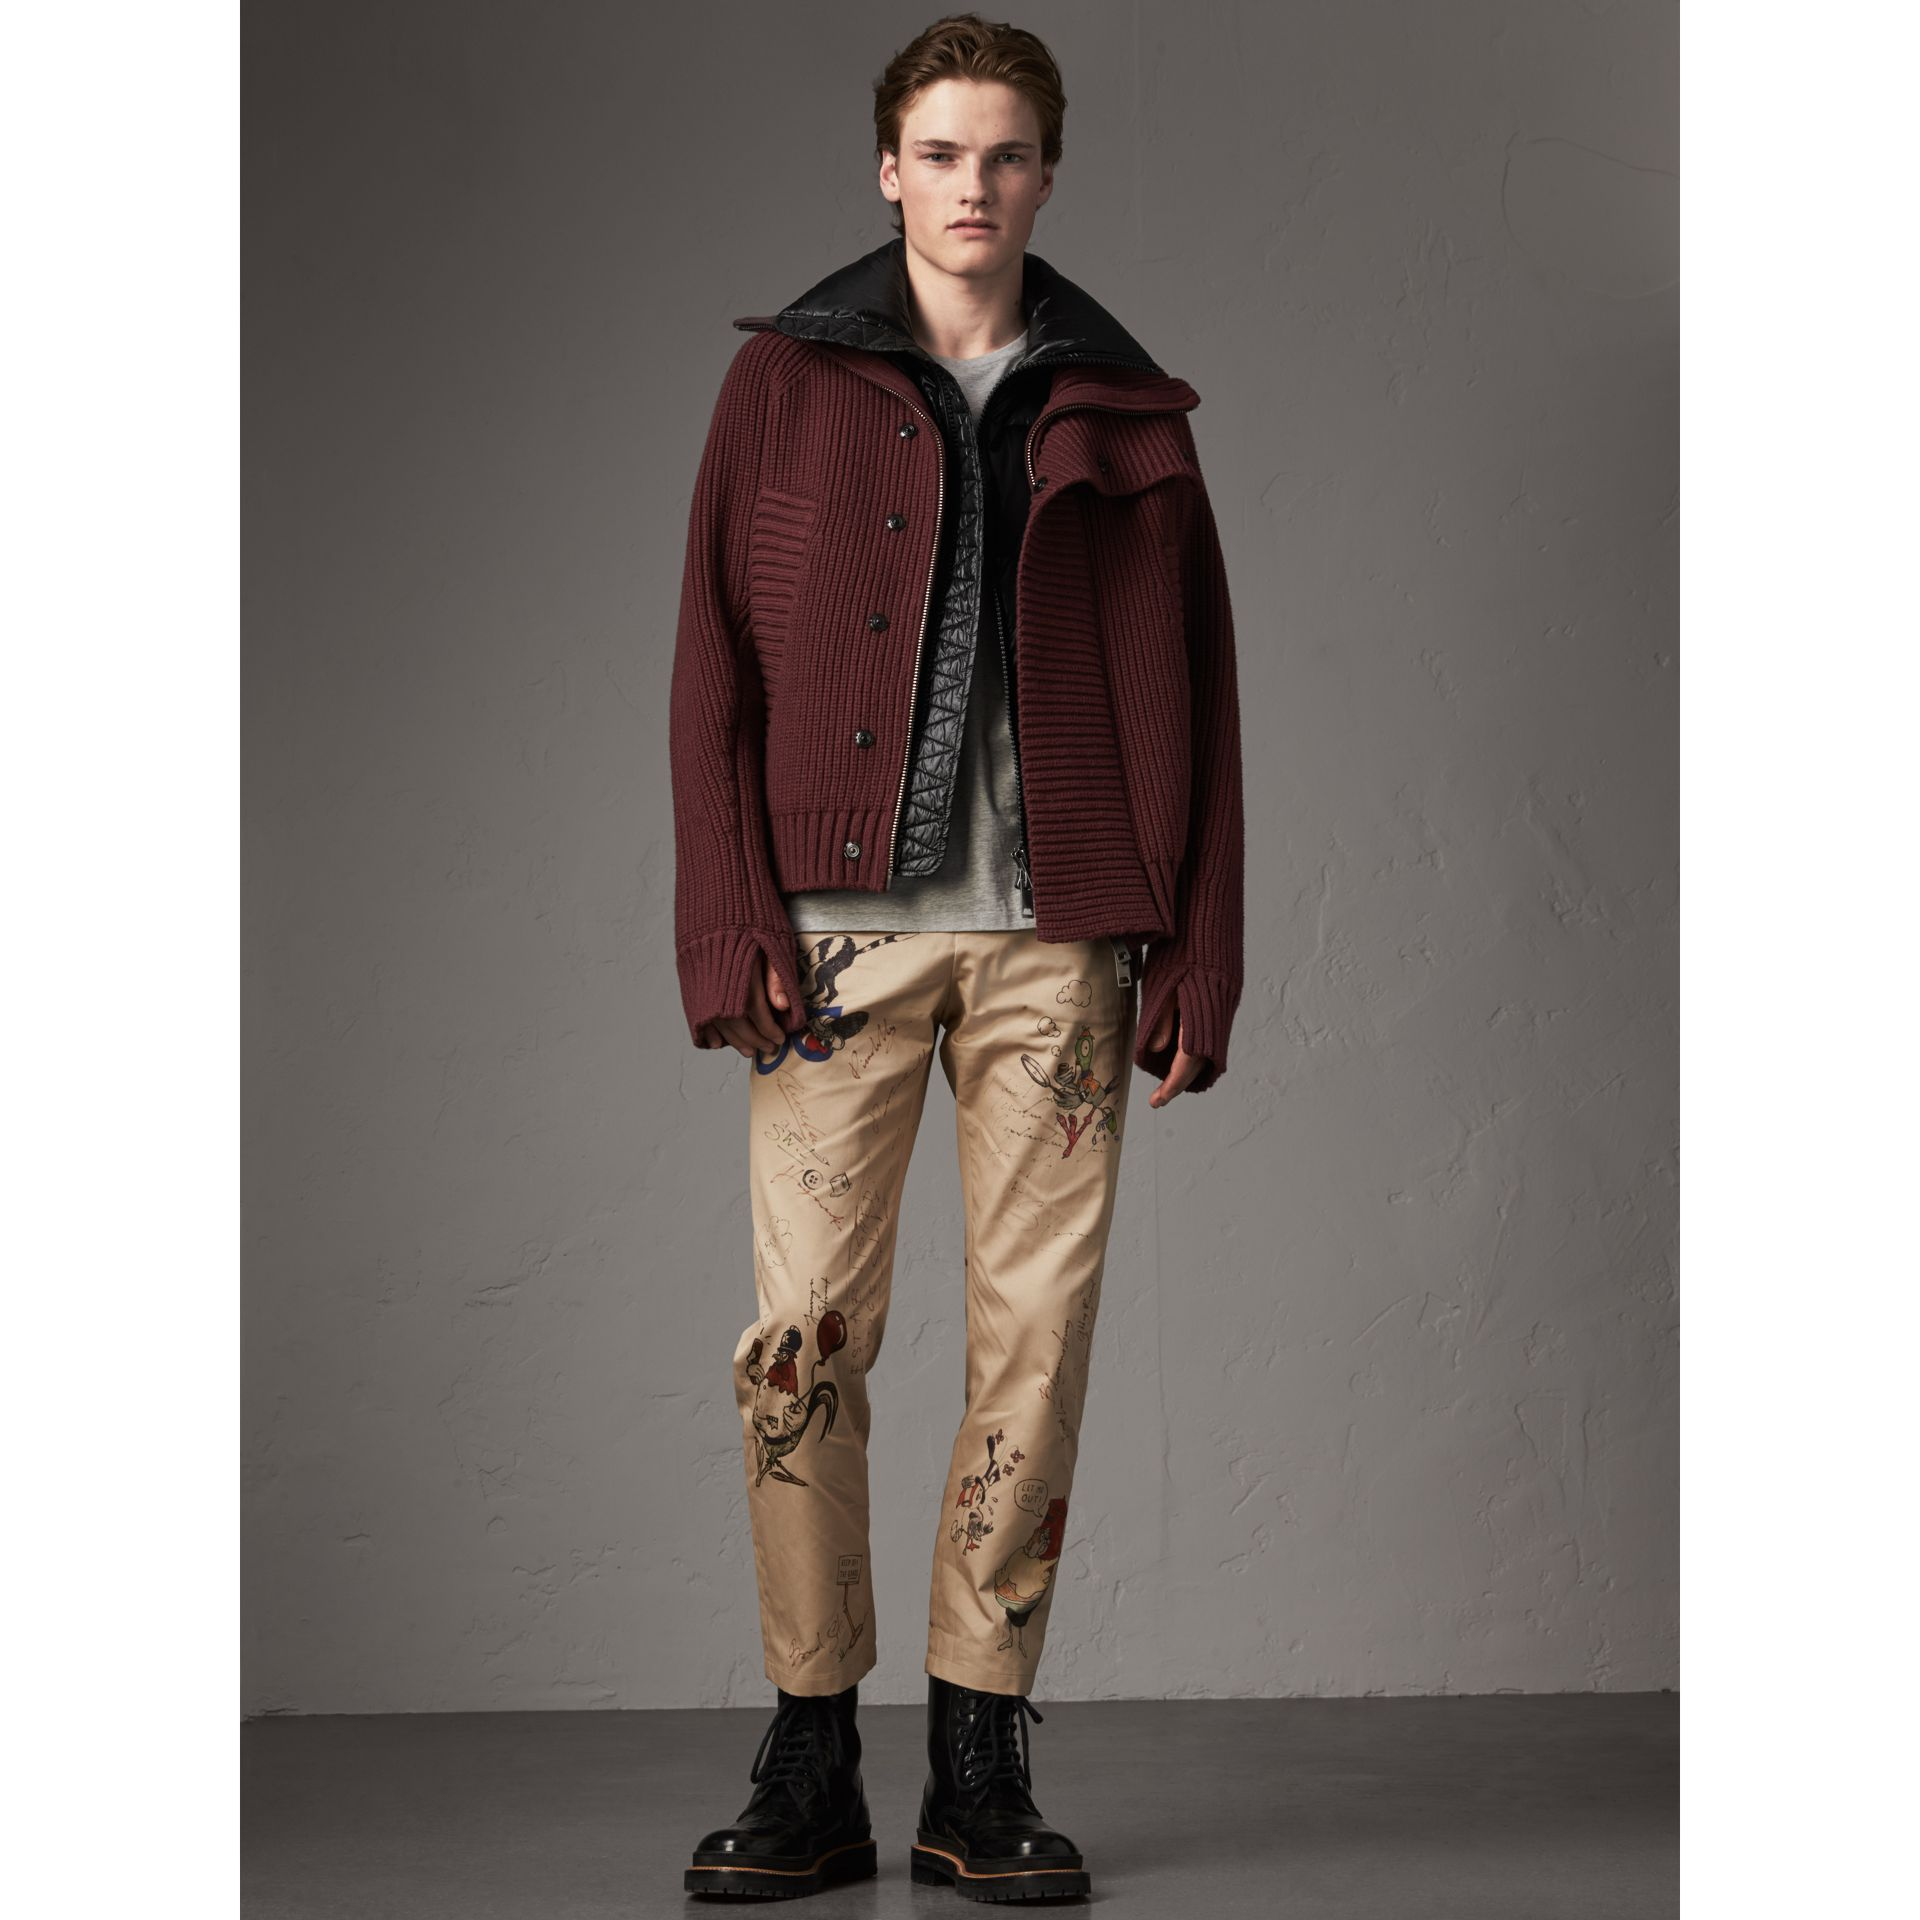 Rib Knit Cotton Blend Jacket with Down-filled Gilet in Mahogany Red - Men | Burberry Canada - gallery image 5